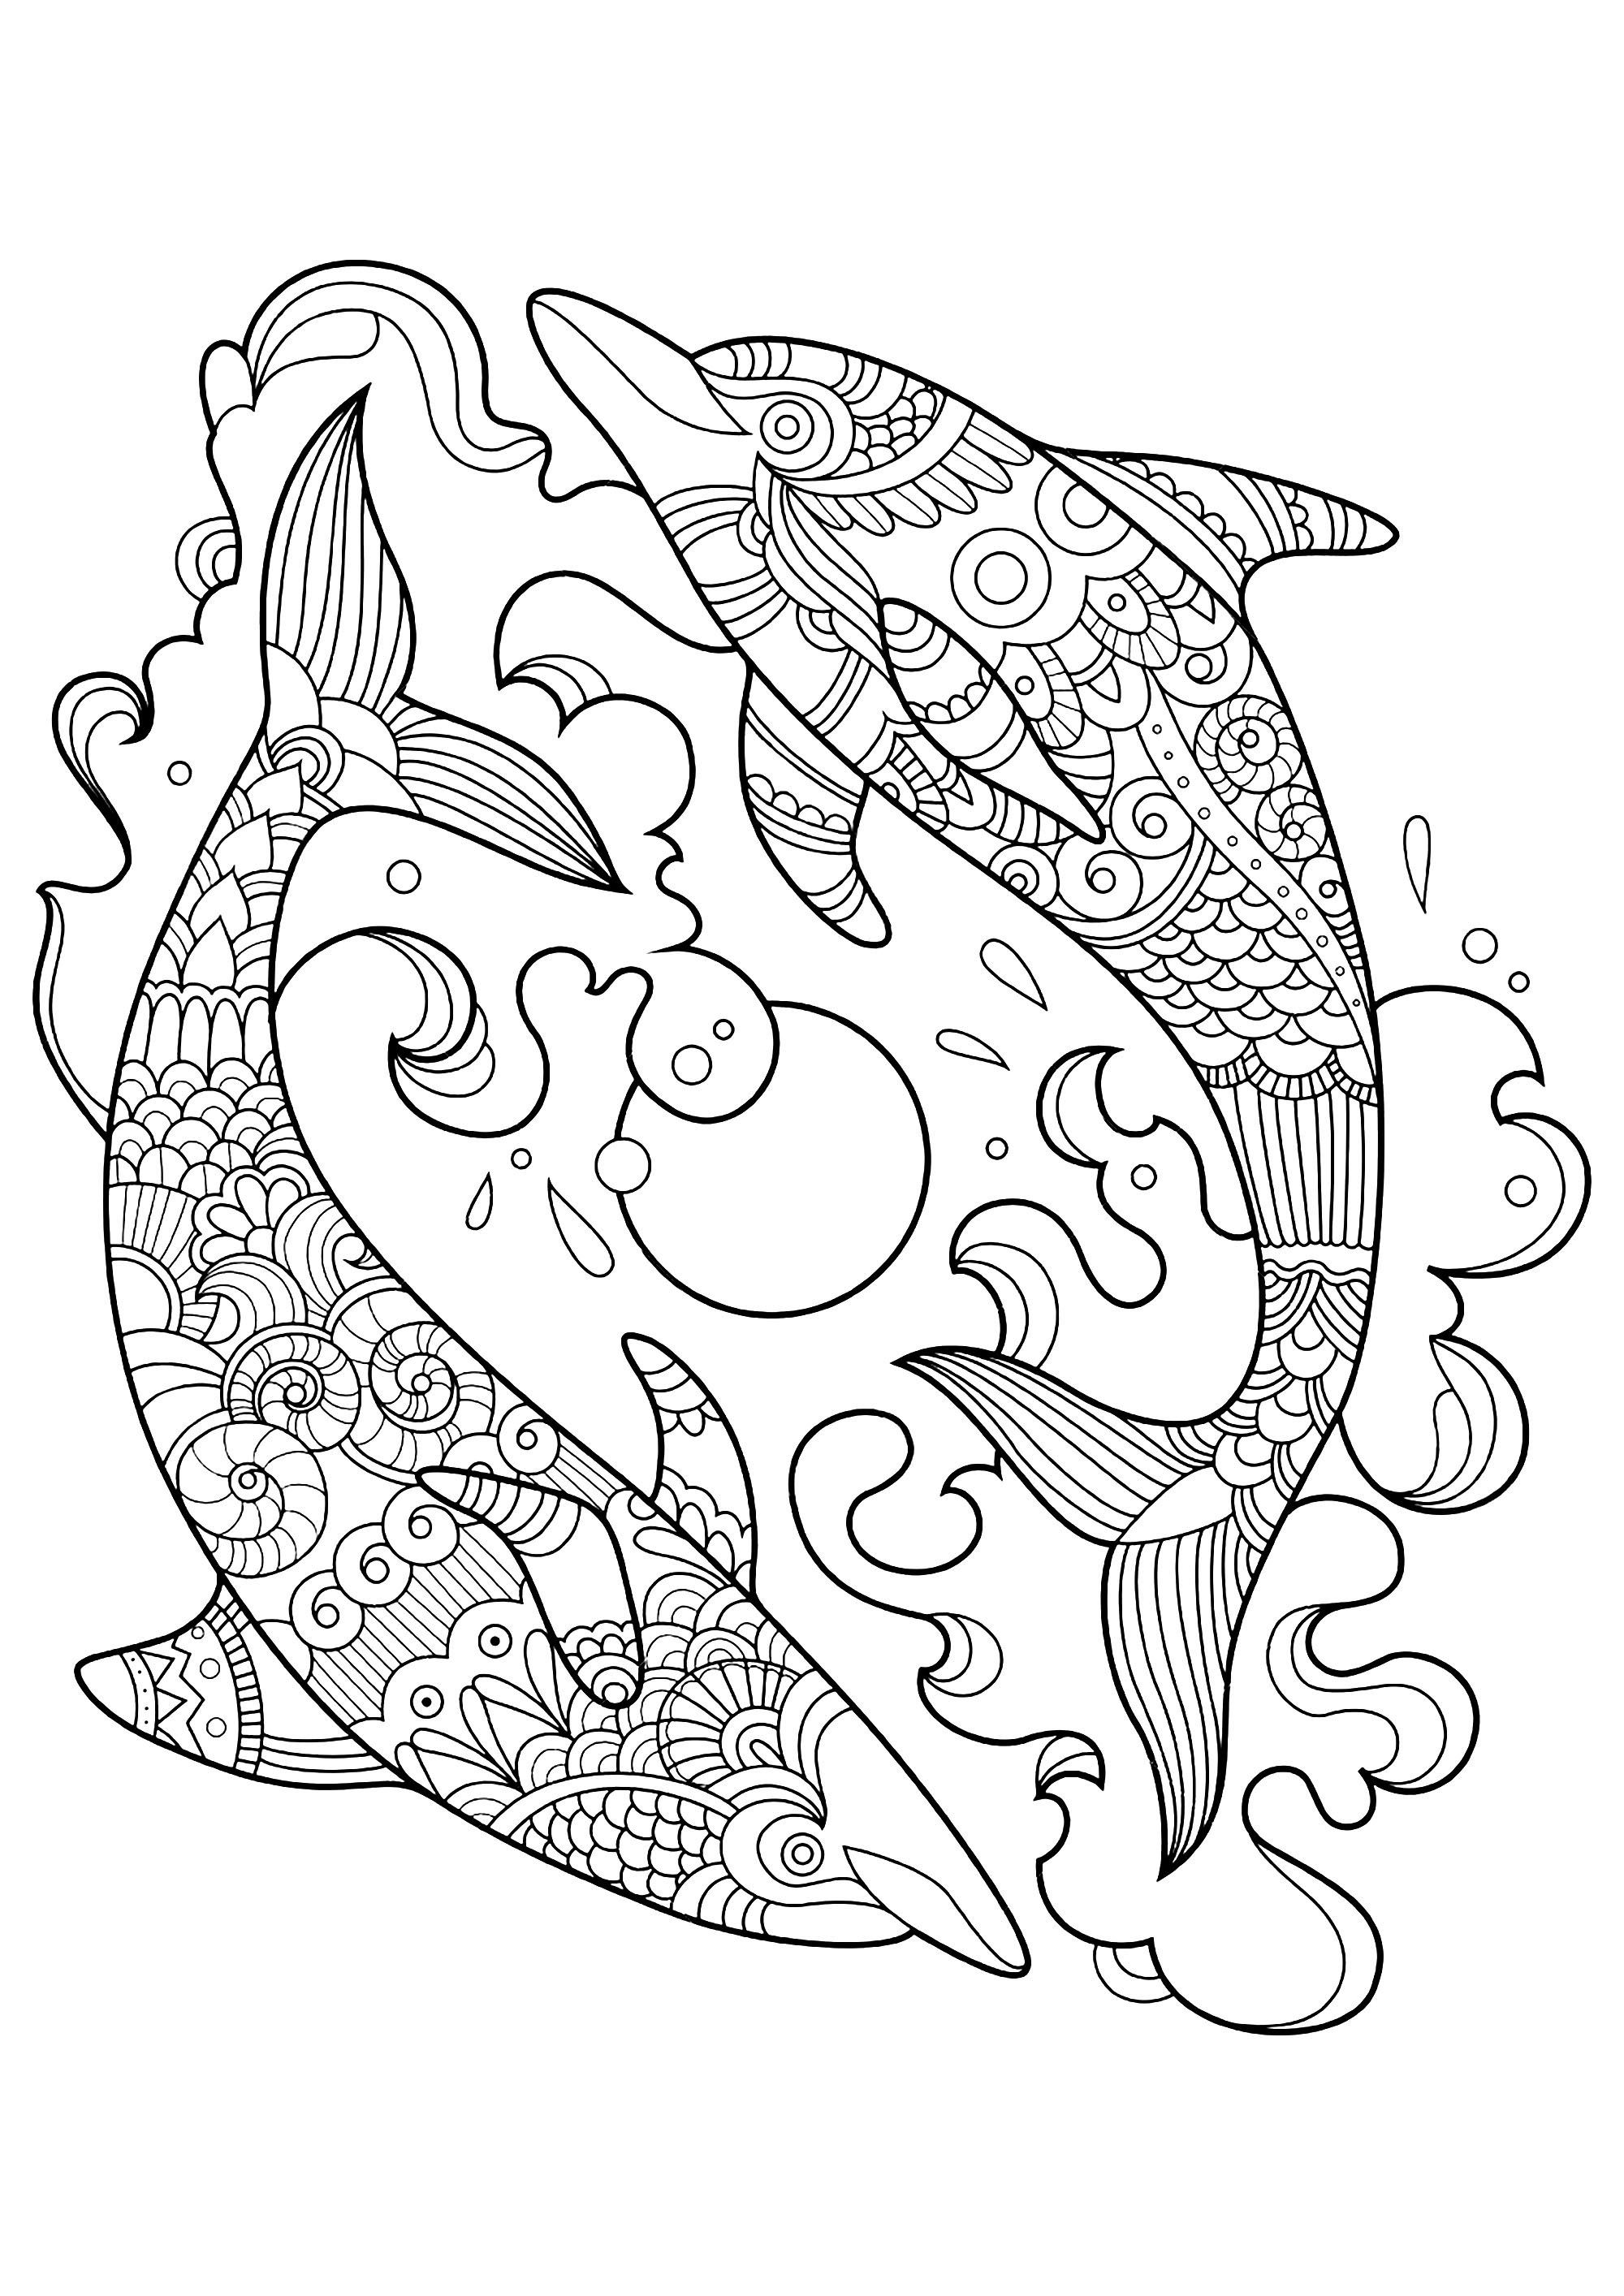 Dolphins to color for children - Funny Dolphins coloring page. From ...